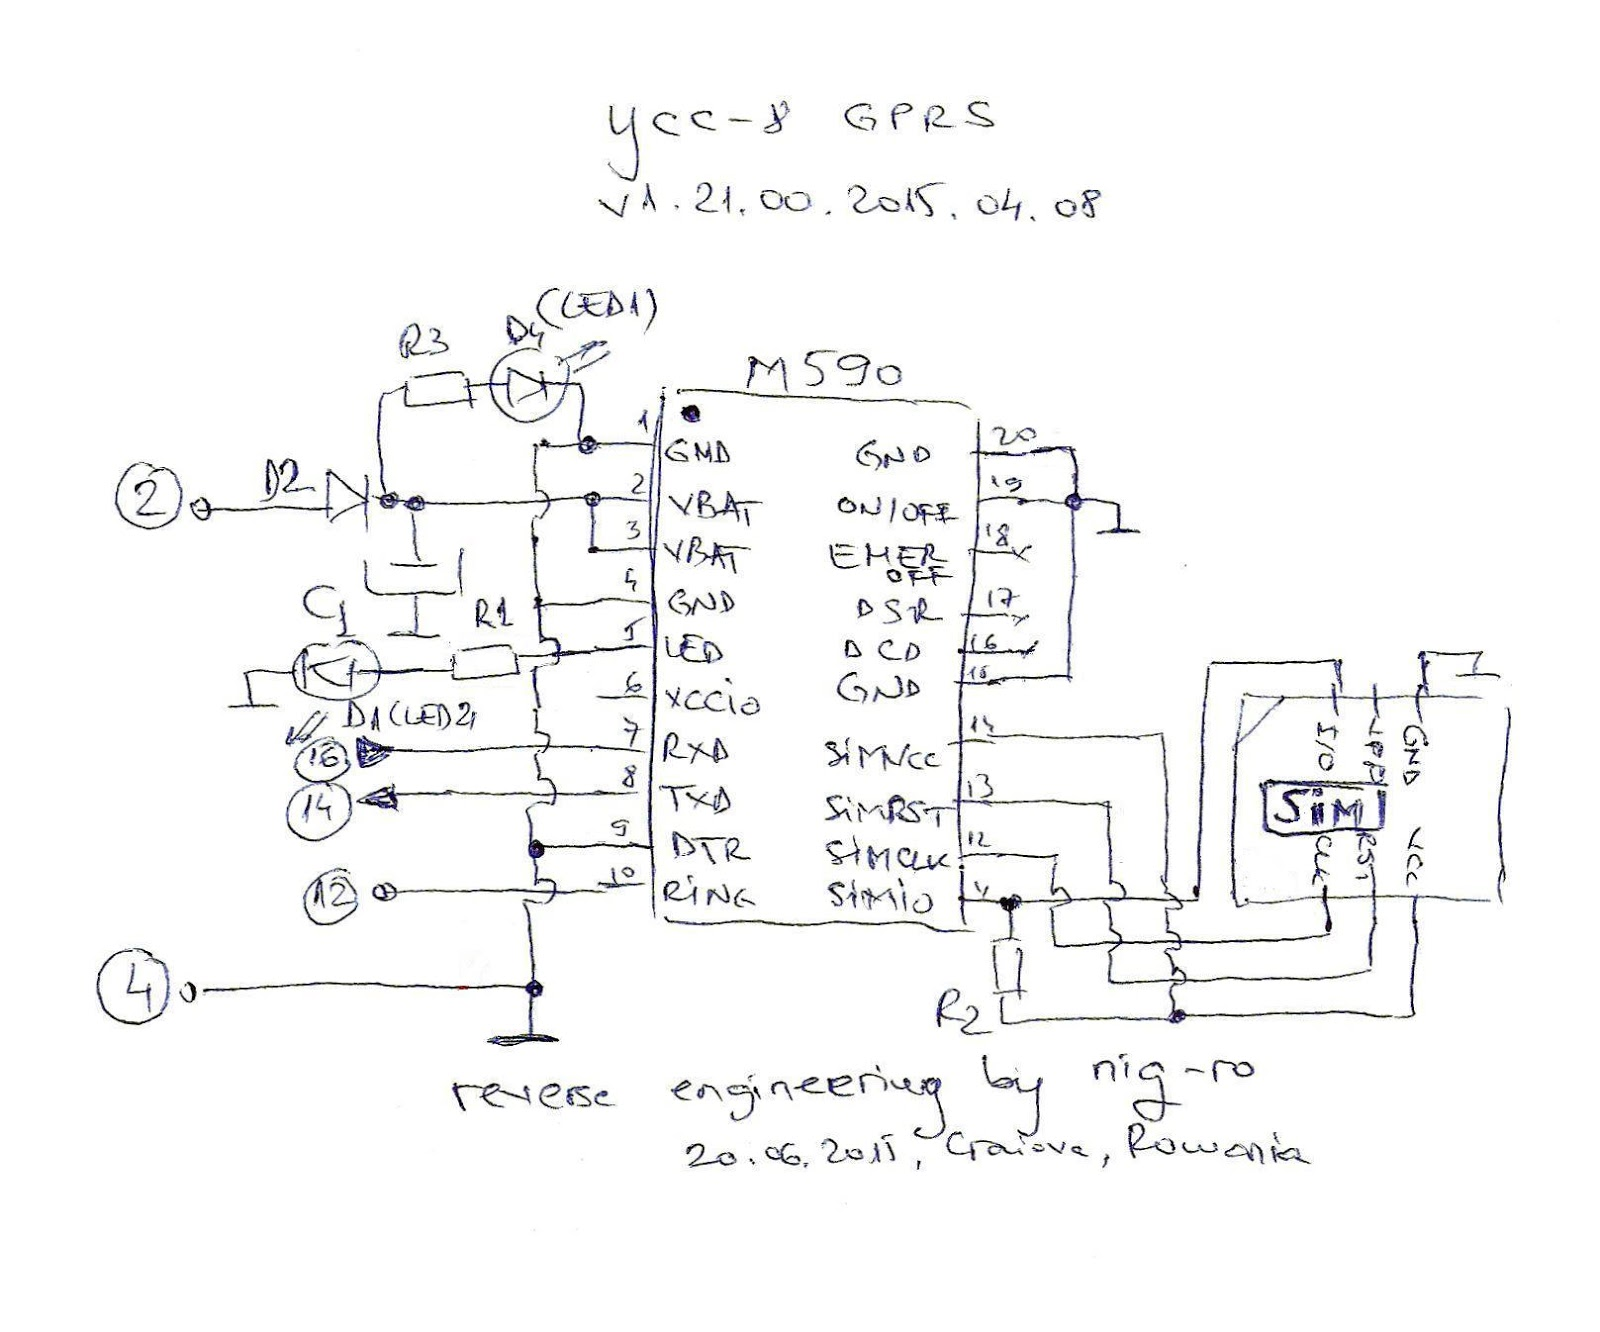 small resolution of wrg 2570 lexus rx300 wiring diagram cpu pinout and is clear is a simplified